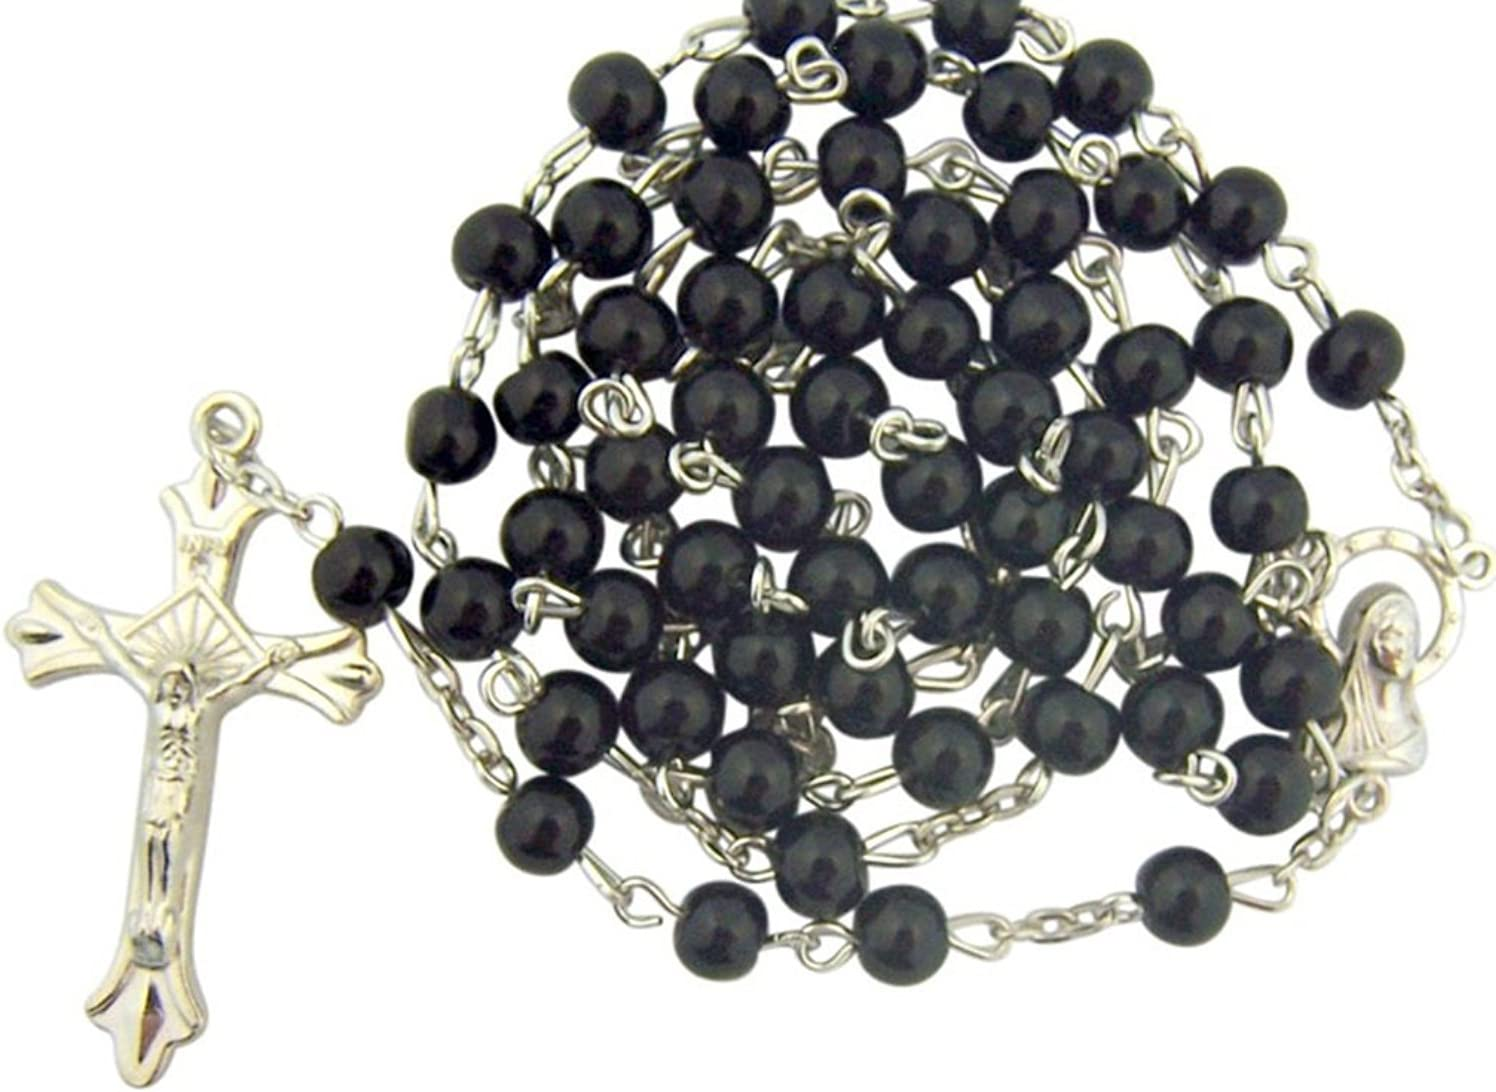 Black Glass Beads Rosary 6mm Great CB by At the price Men for Boys Cheap super special price or